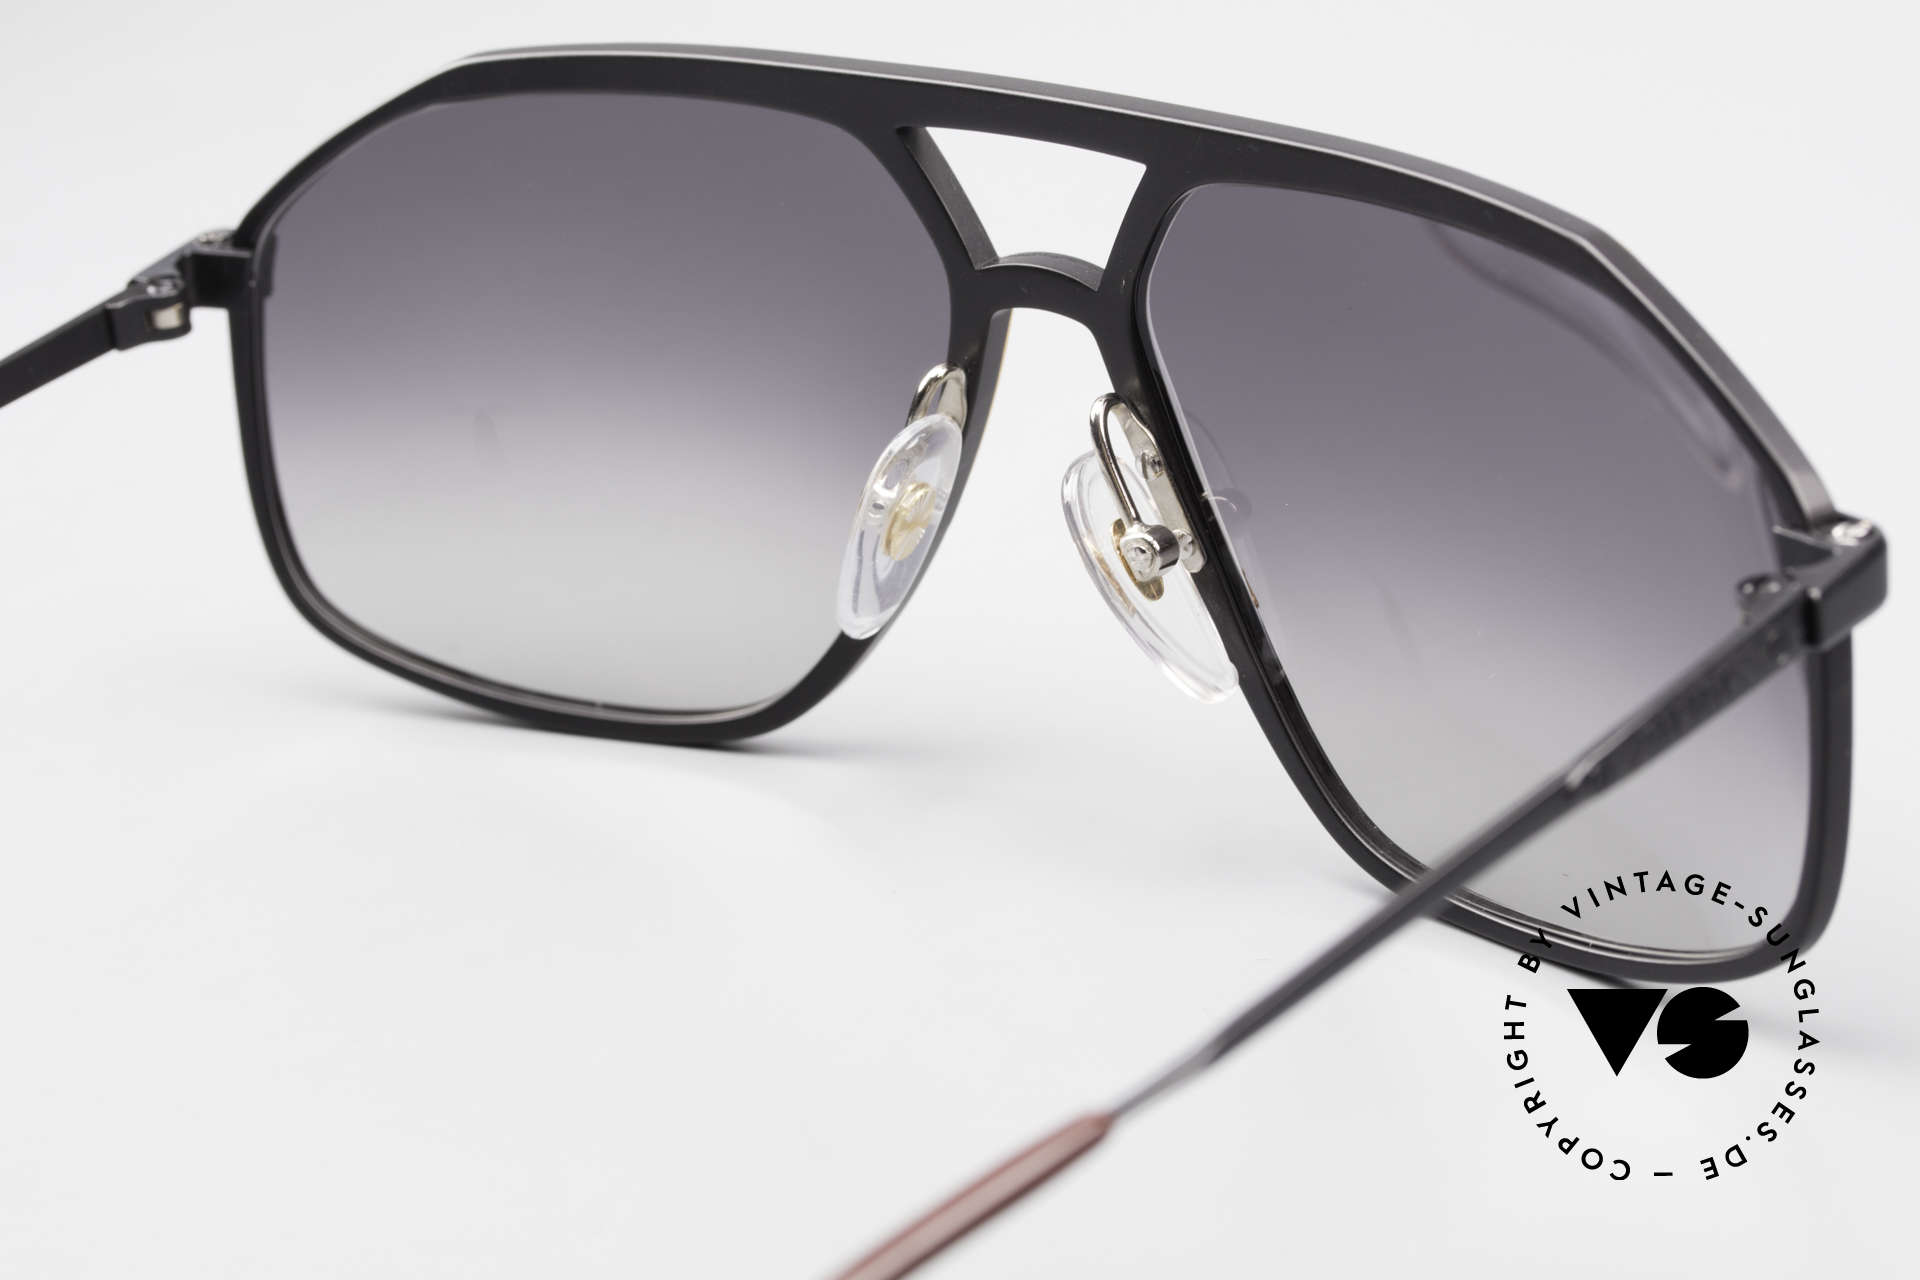 Alpina M1/7 XL Vintage Shades Early 90's, the imprints are missing on this pair (last production), Made for Men